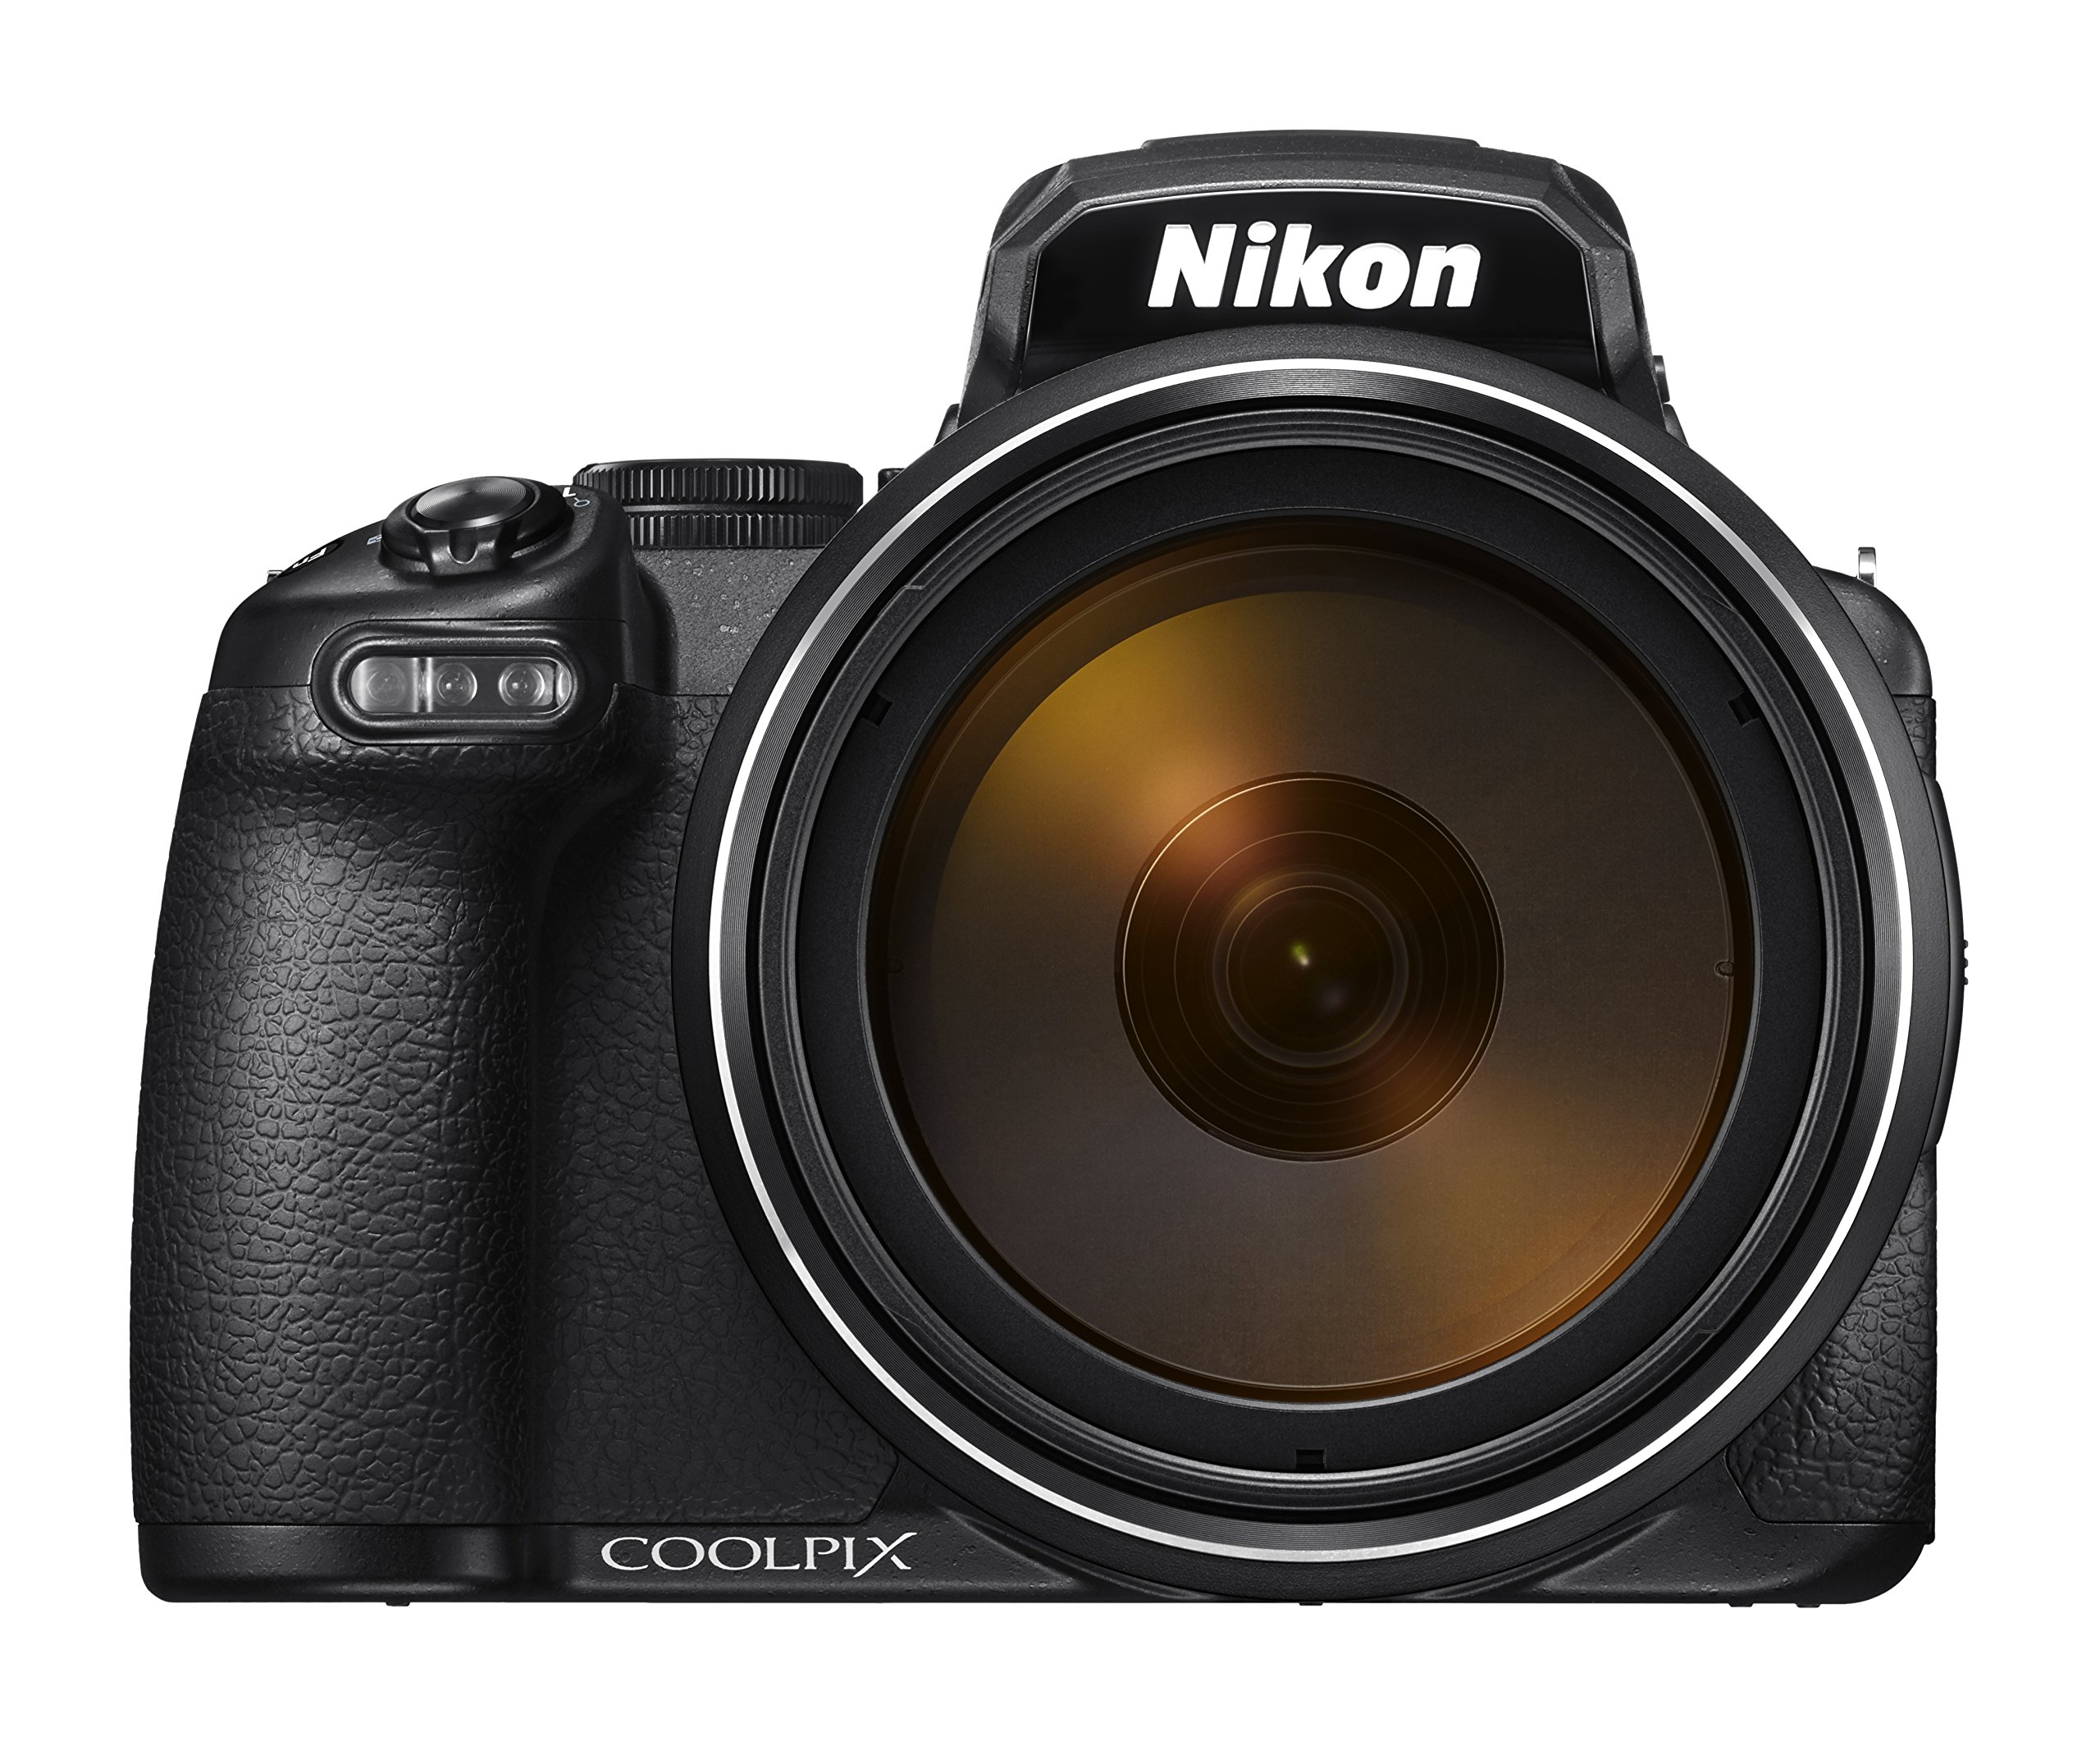 "Nikon COOLPIX P1000 16.7 Digital Camera 3.2"" LCD, Black - 9196pvn2cvL - Nikon COOLPIX P1000 16.7 Digital Camera with 3.2″ LCD, Black"